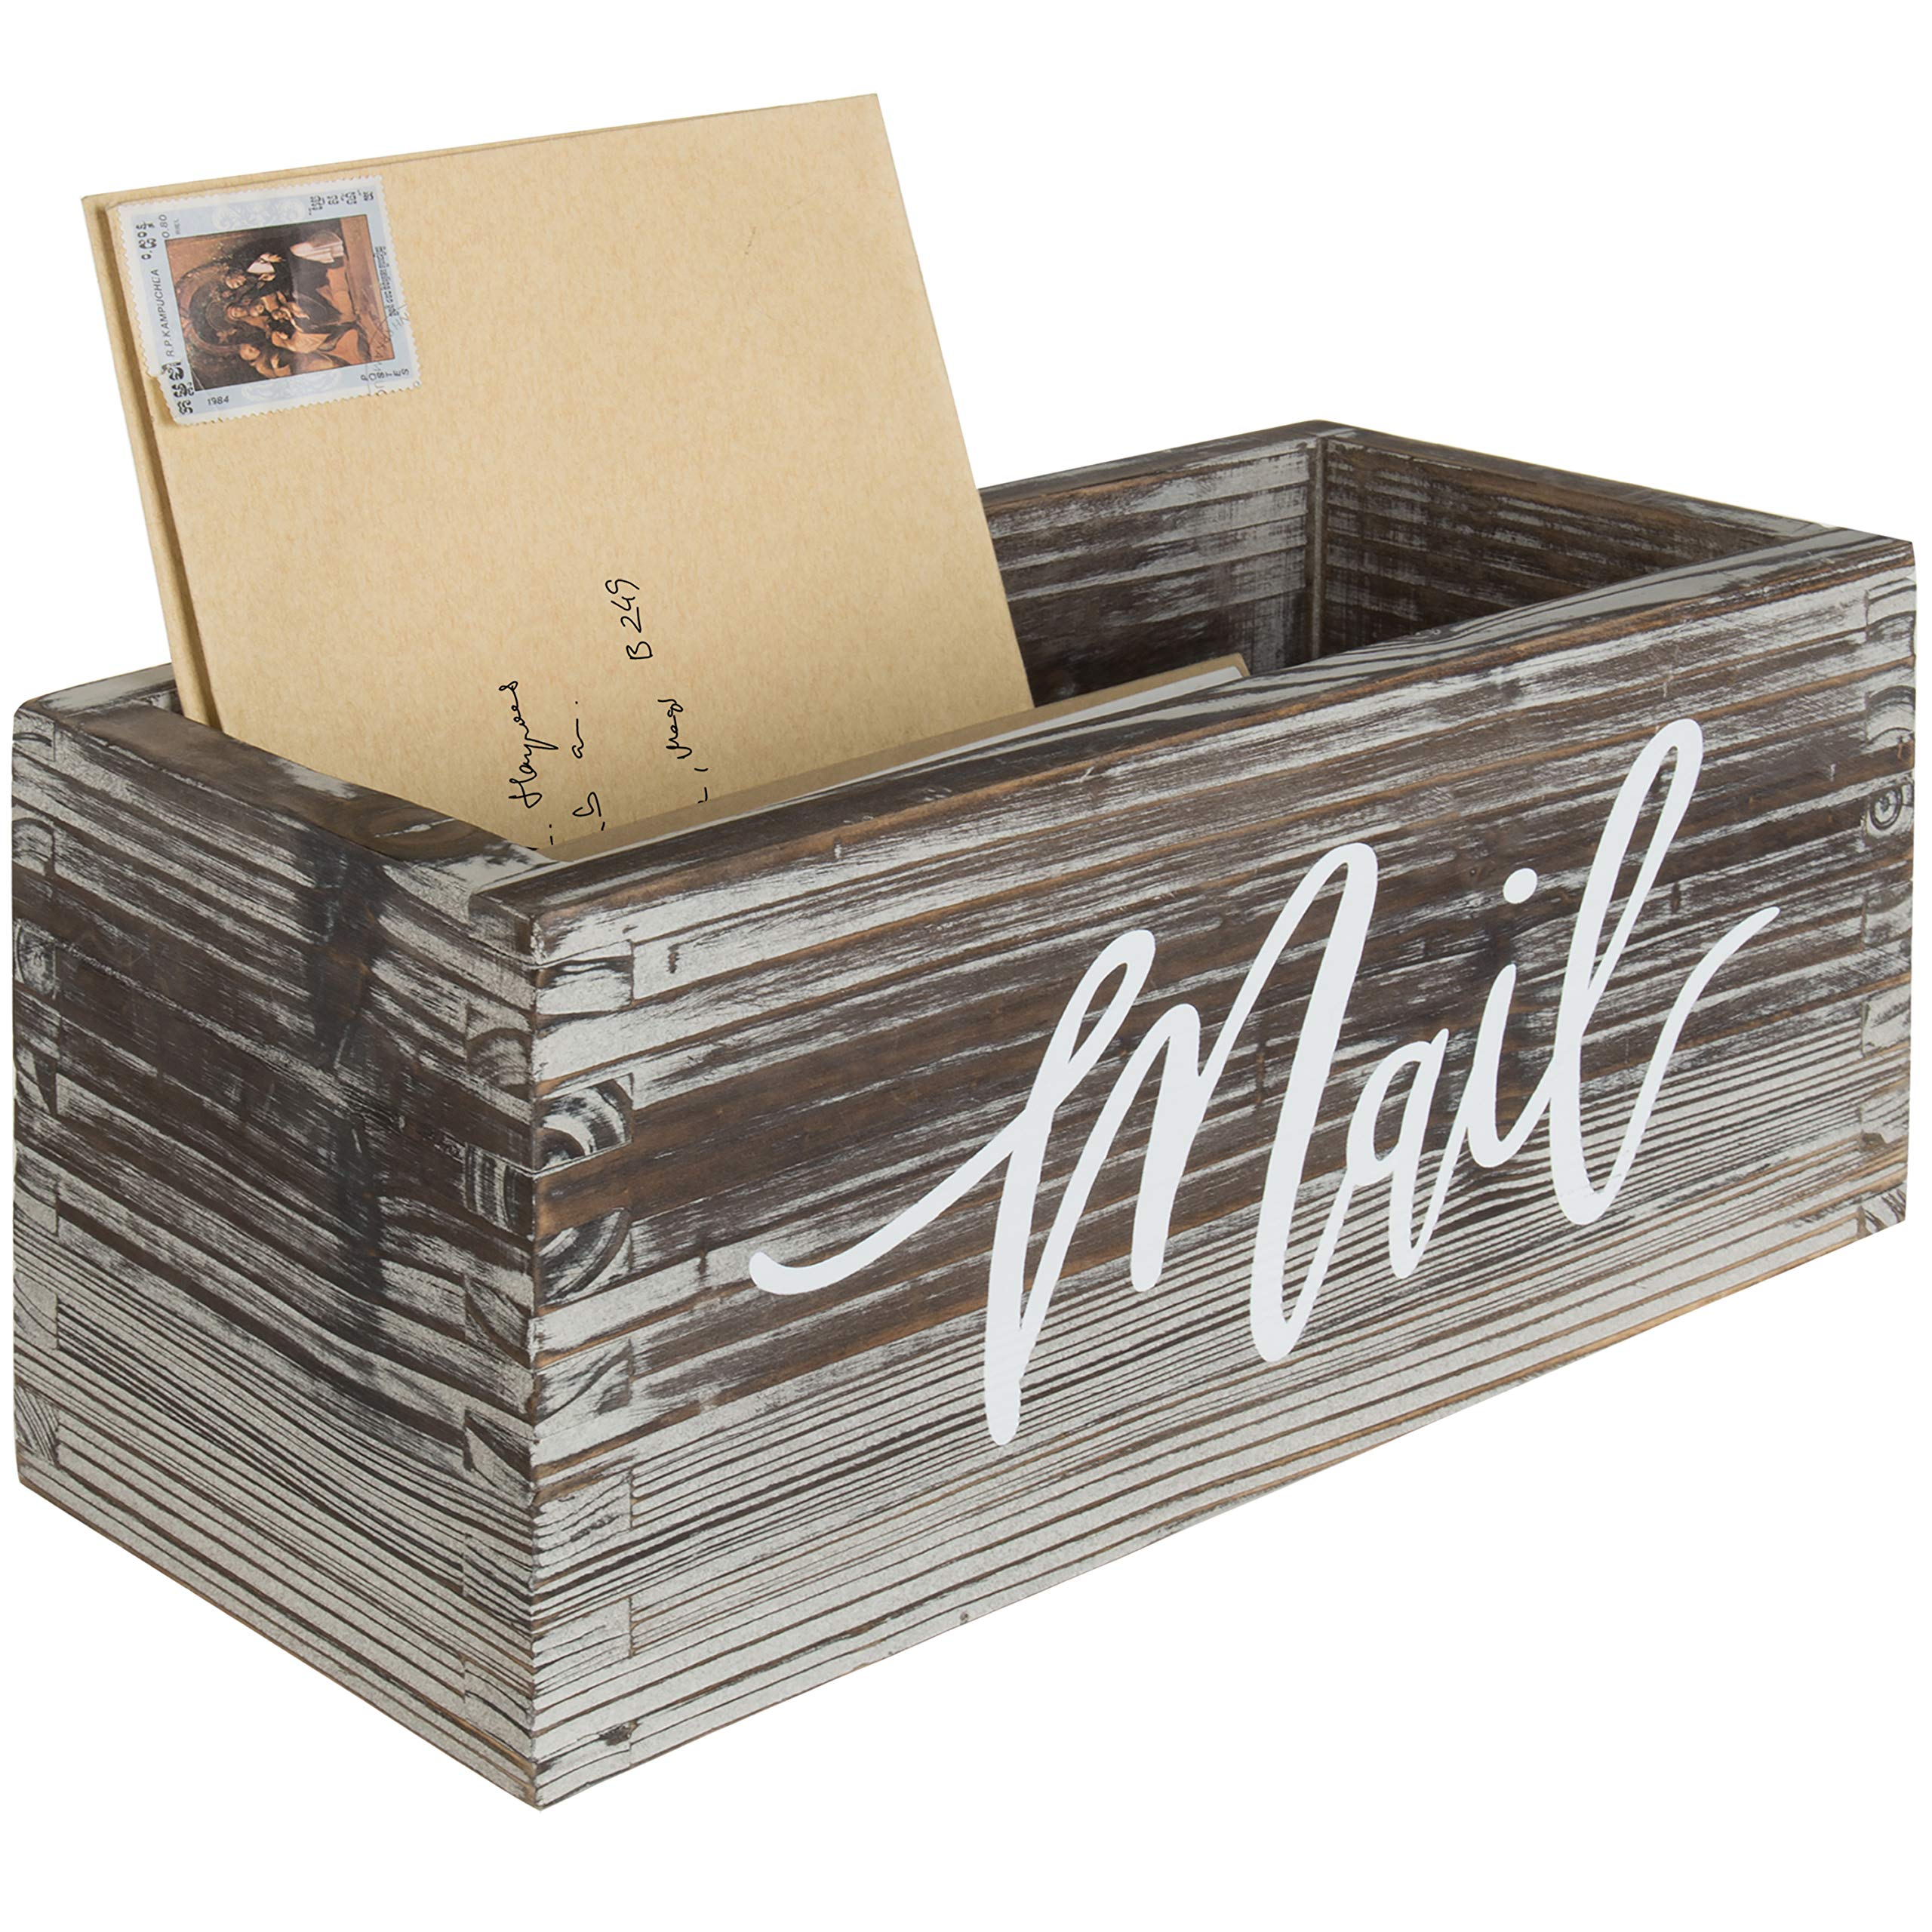 MyGift Rustic Torched Wood Tabletop Decorative Mail Holder Box by MyGift